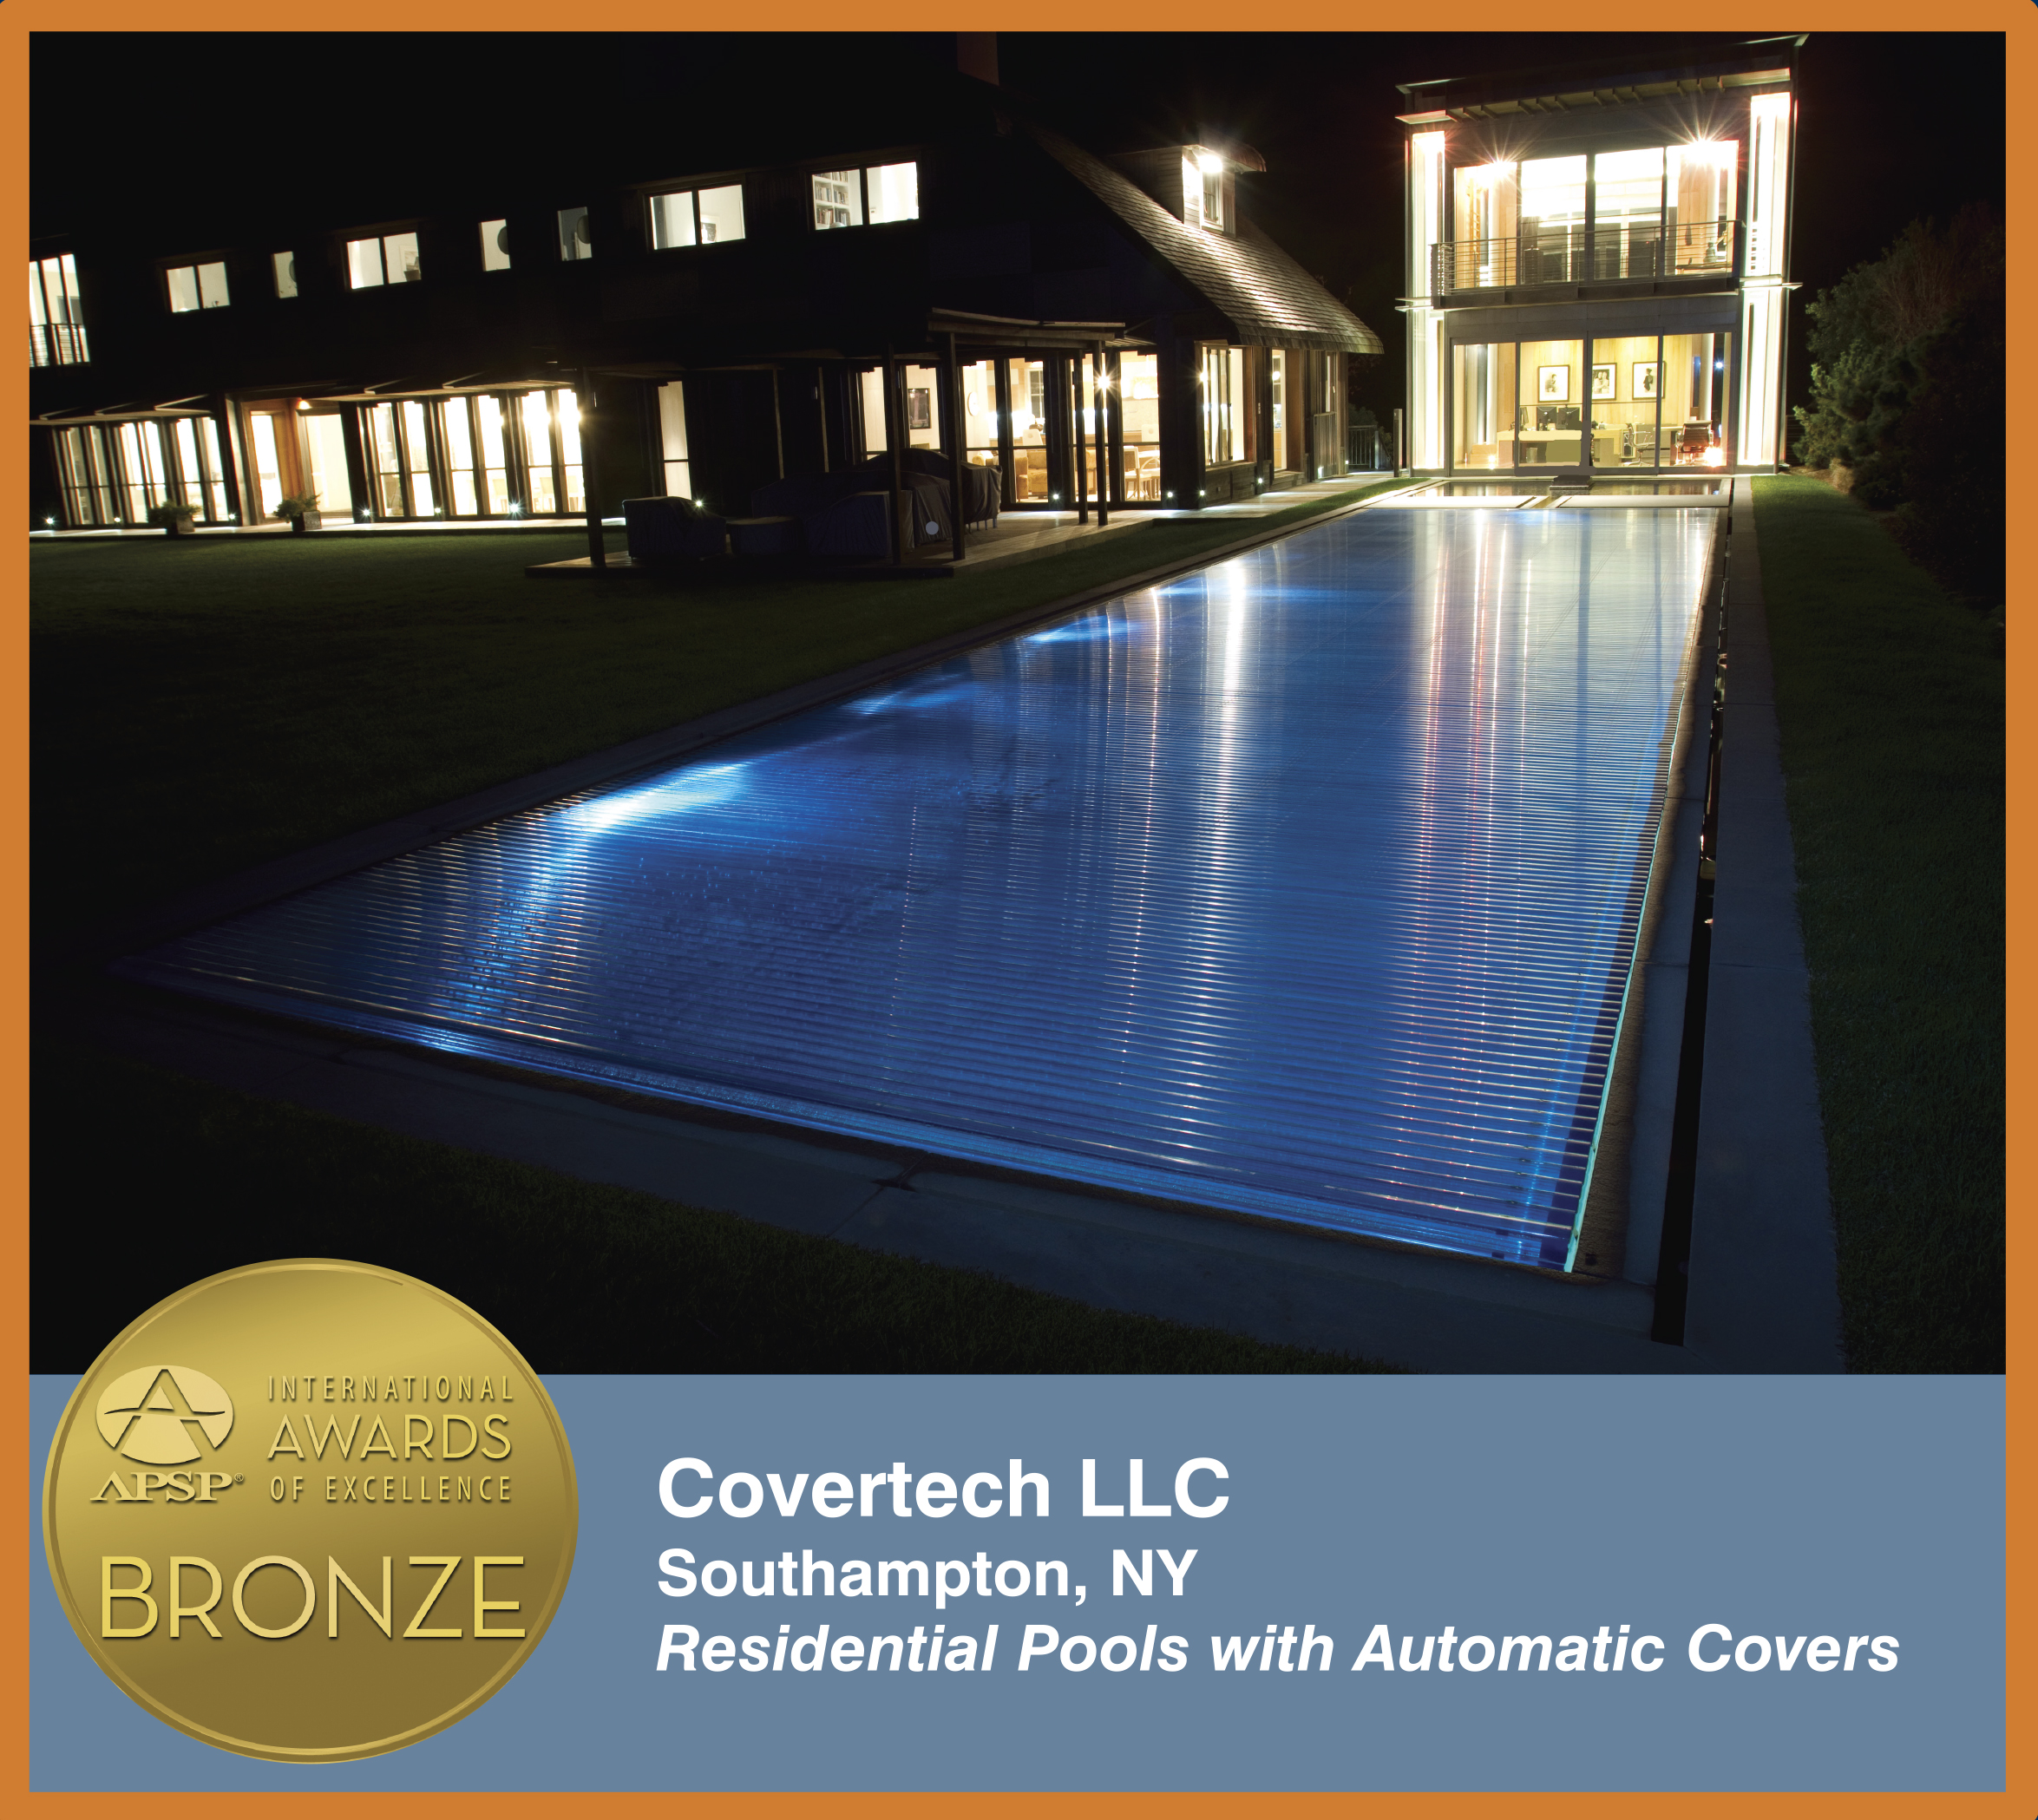 Covertech Grando automatic rigid slated pool cover International APSP Bronze2 Award 2014